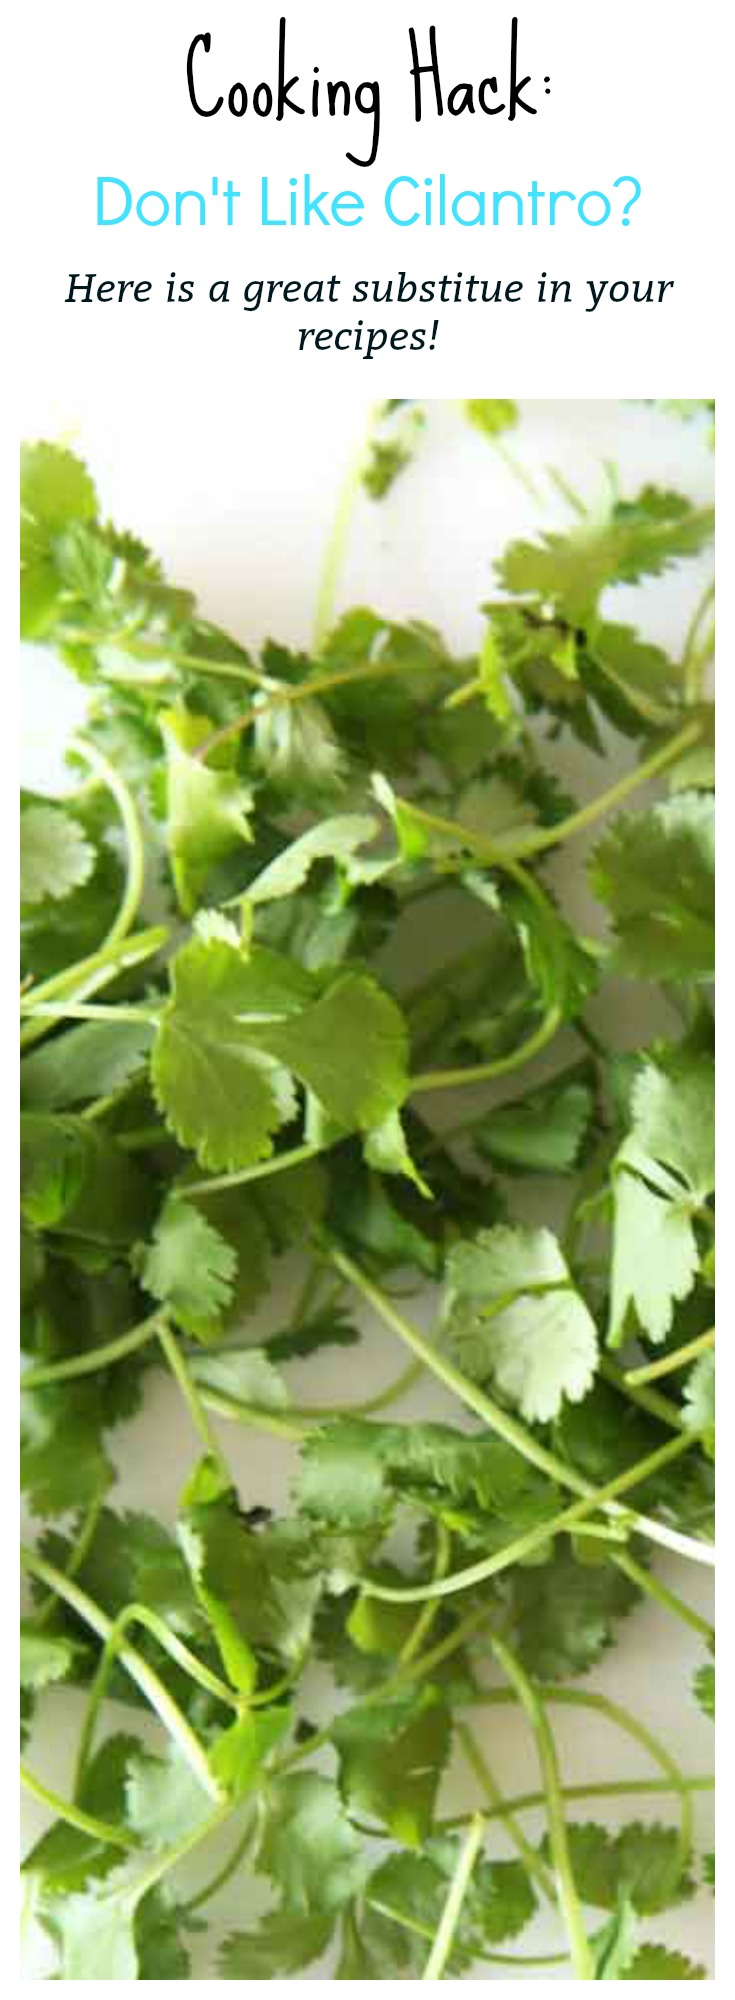 What to replace cilantro with if you don't like the taste.